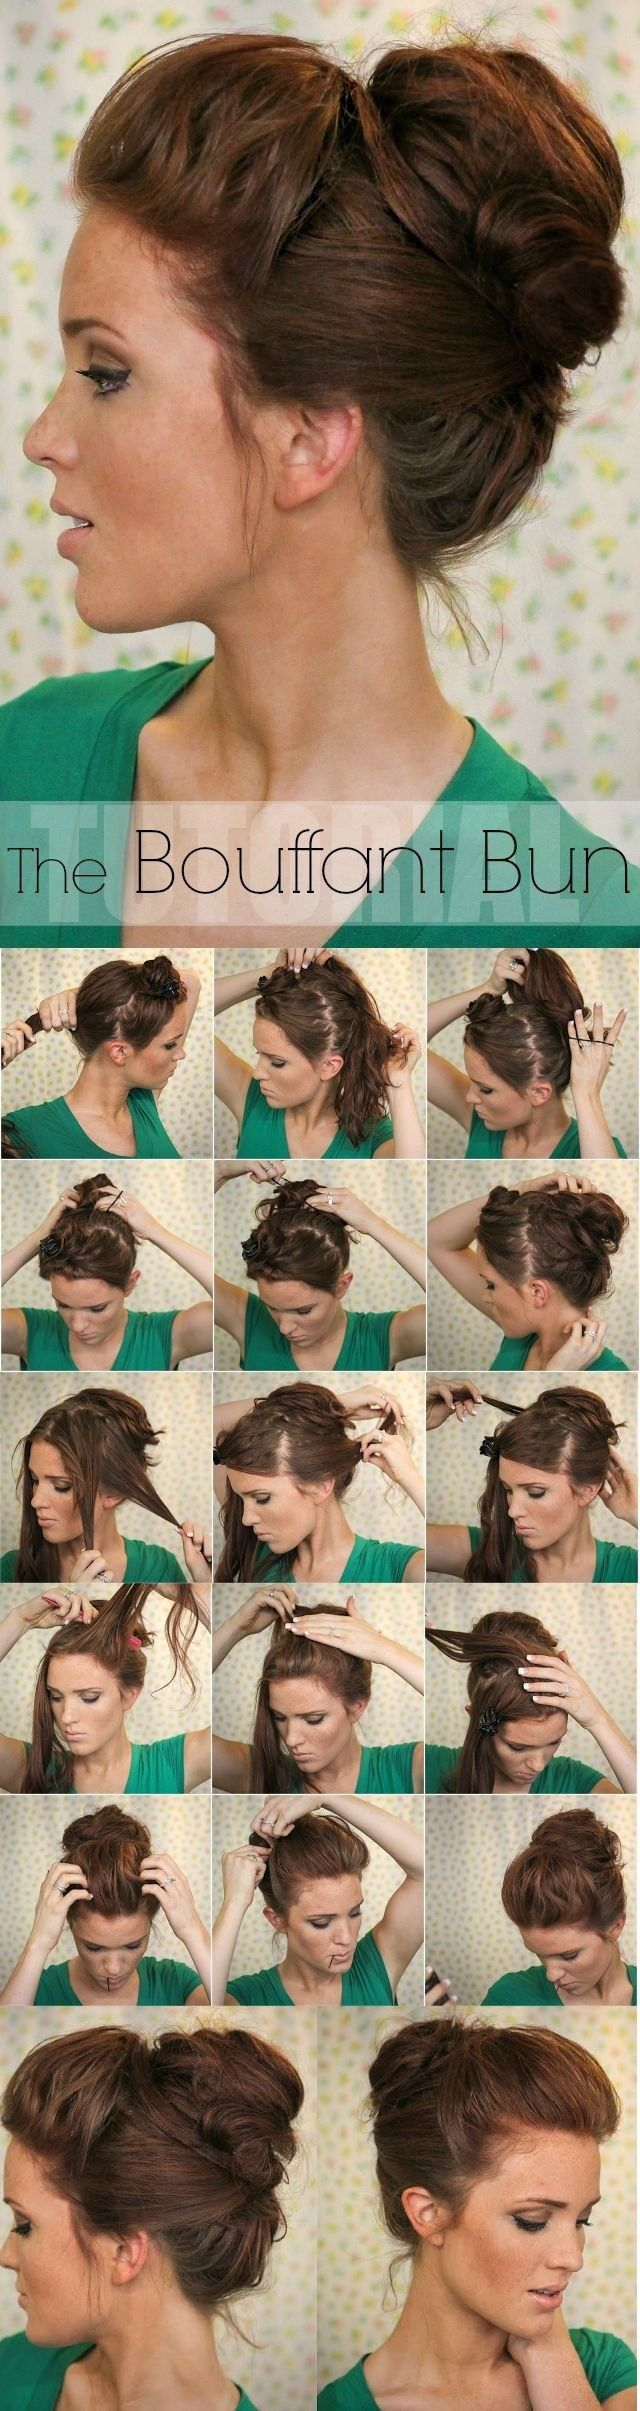 If you are looking for some Formal hairstyles ideas, today I have something for you! Discover 5 Most Delightful Formal hairstyles